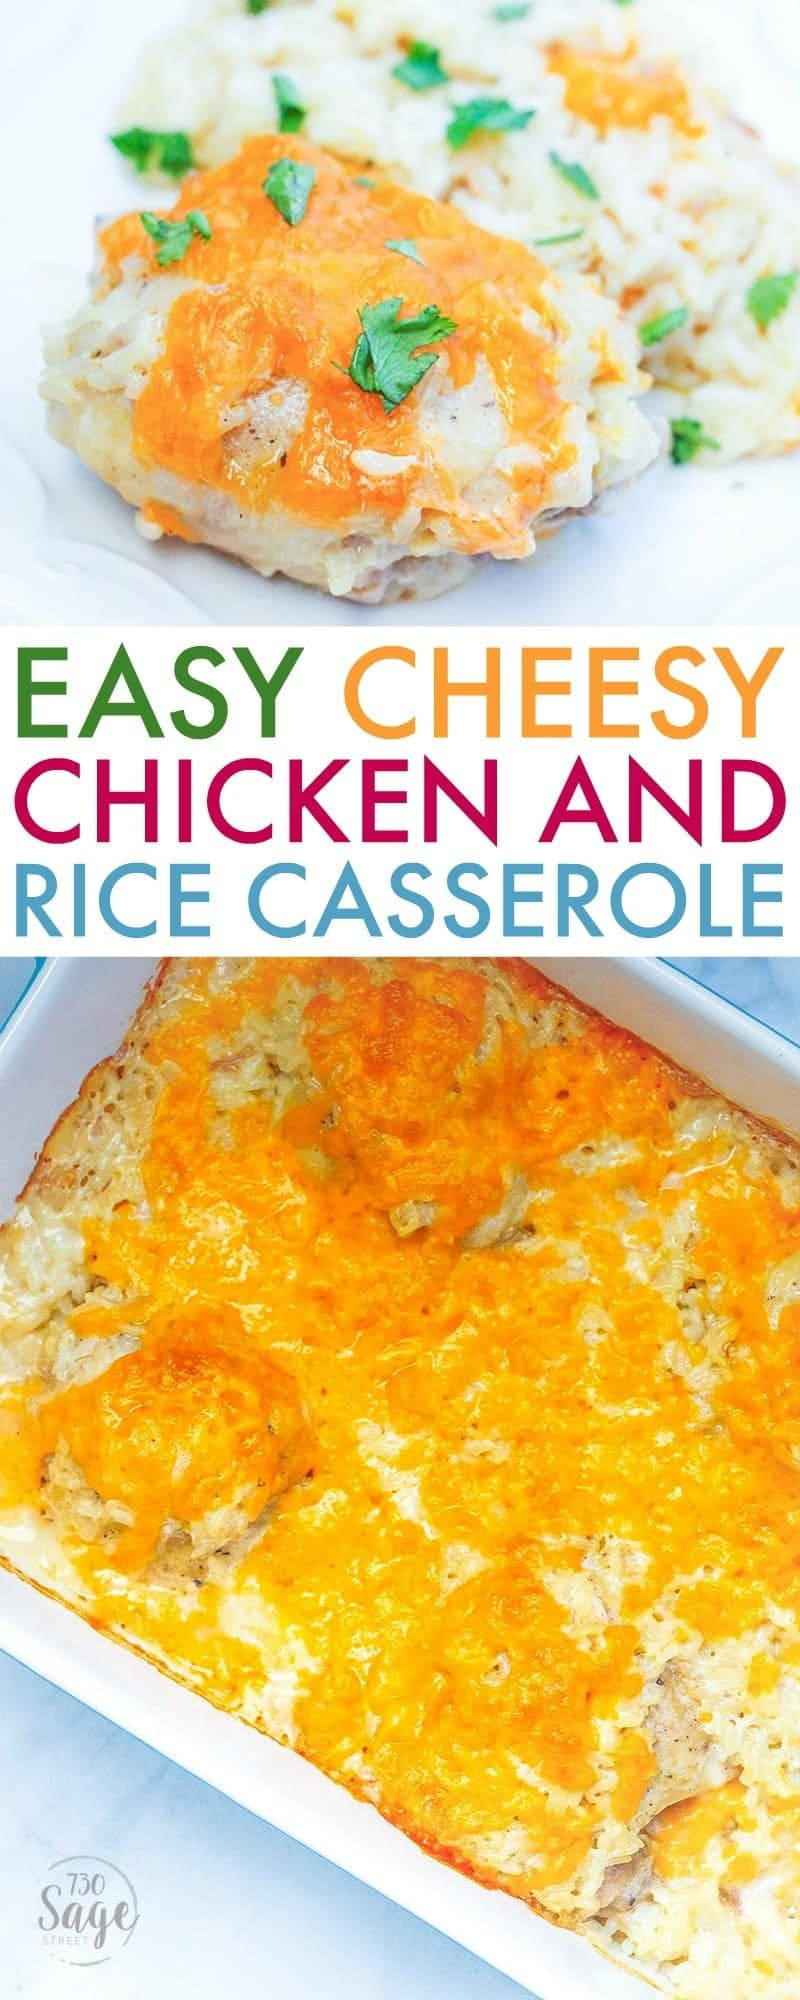 This easy cheesy chicken and rice bake is the perfect casserole recipe for busy weeknights and picky kids. Simple to make & oh-so-good!